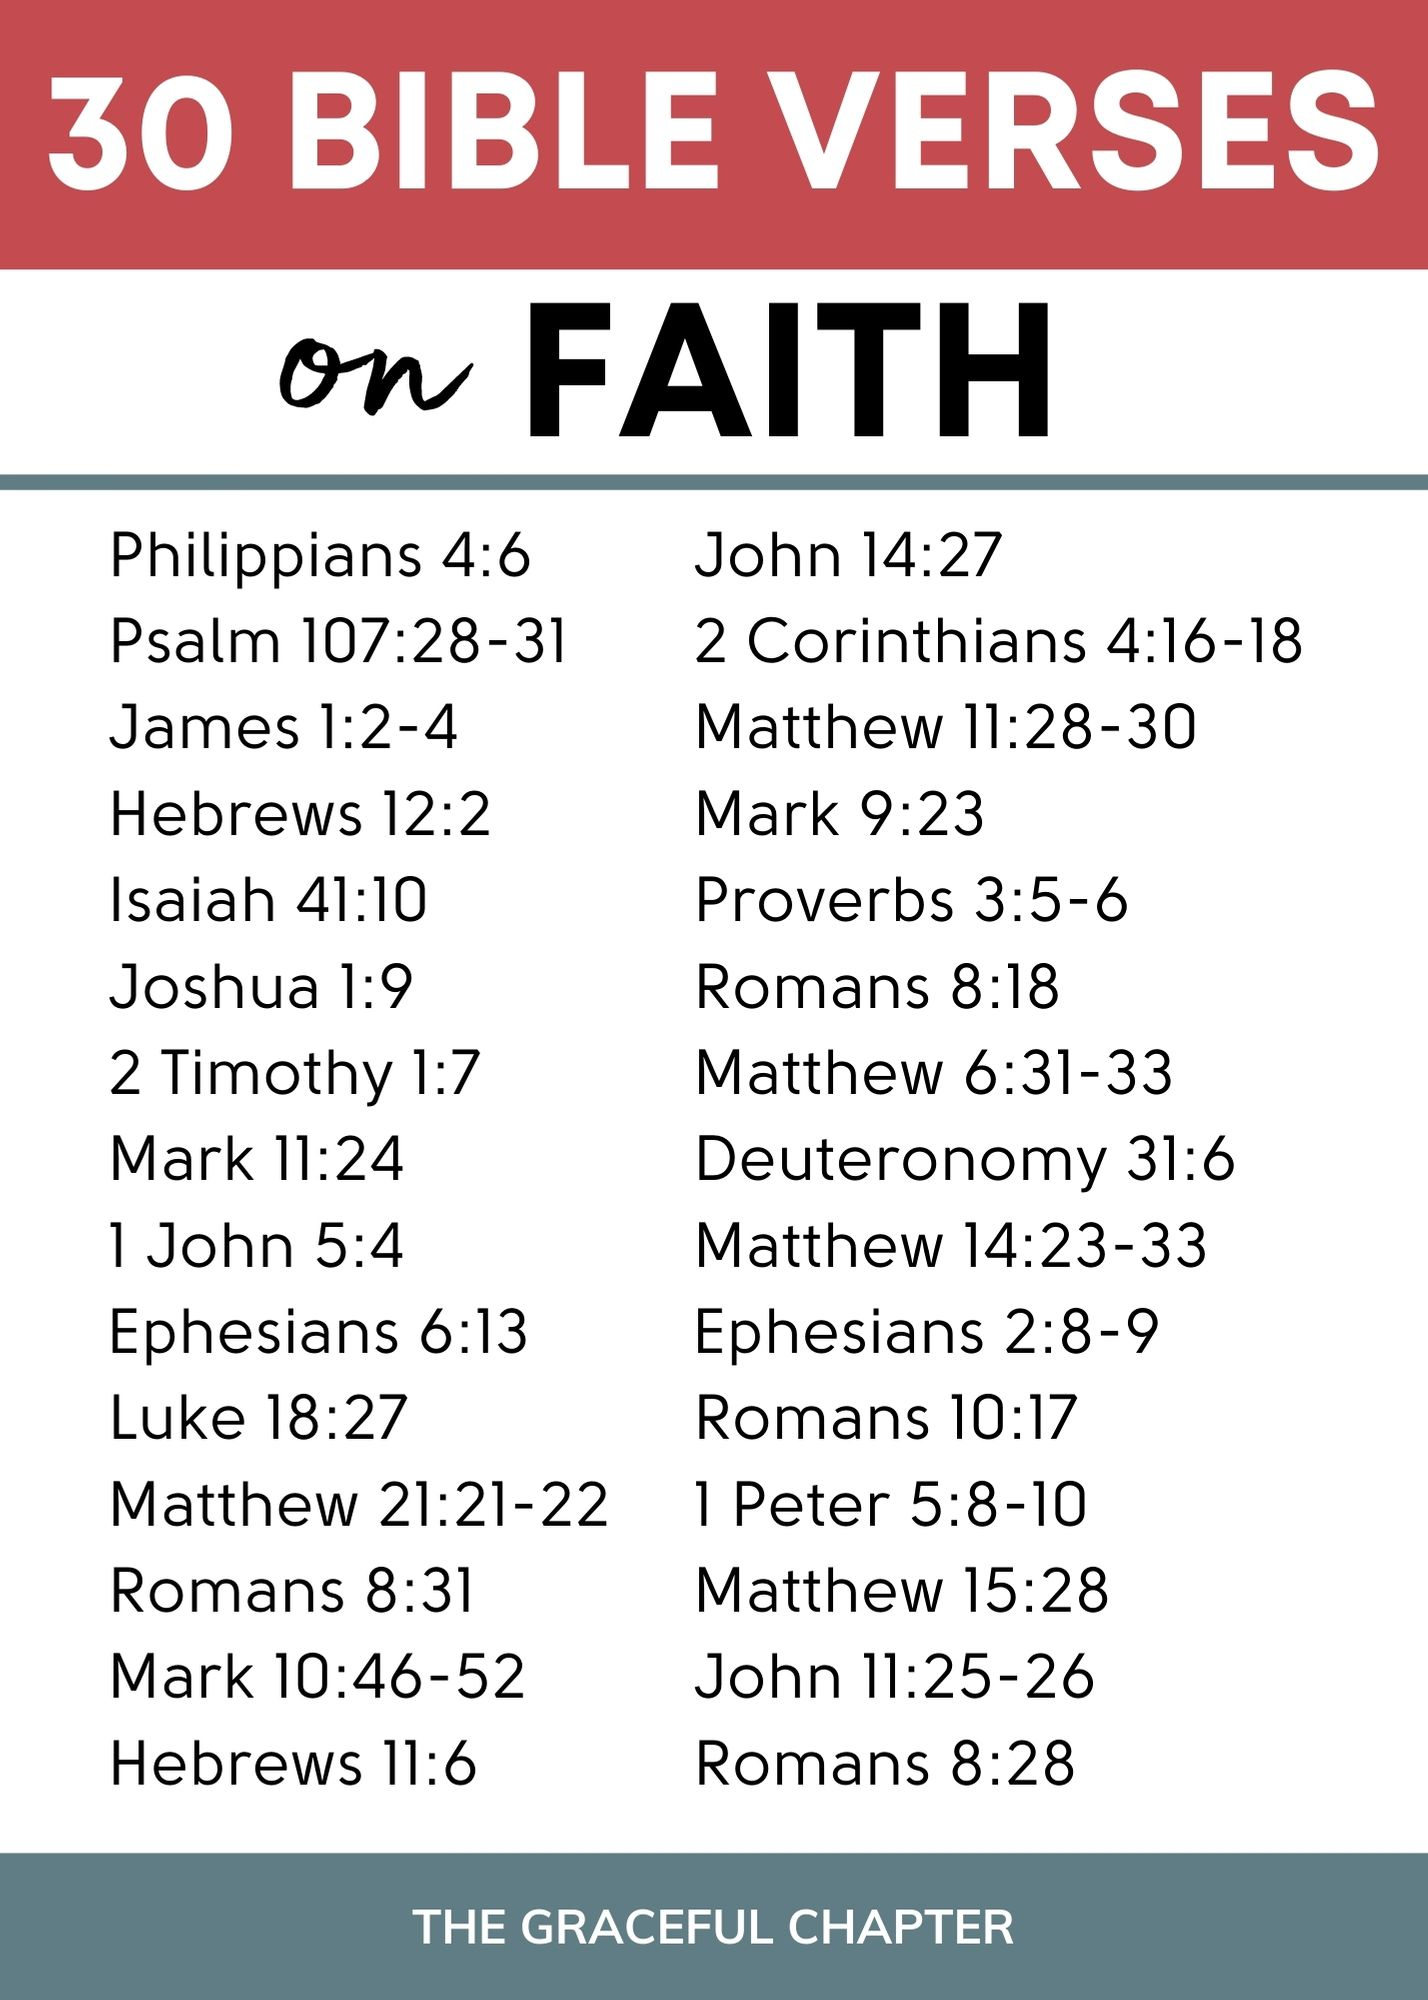 30 bible verses on faith